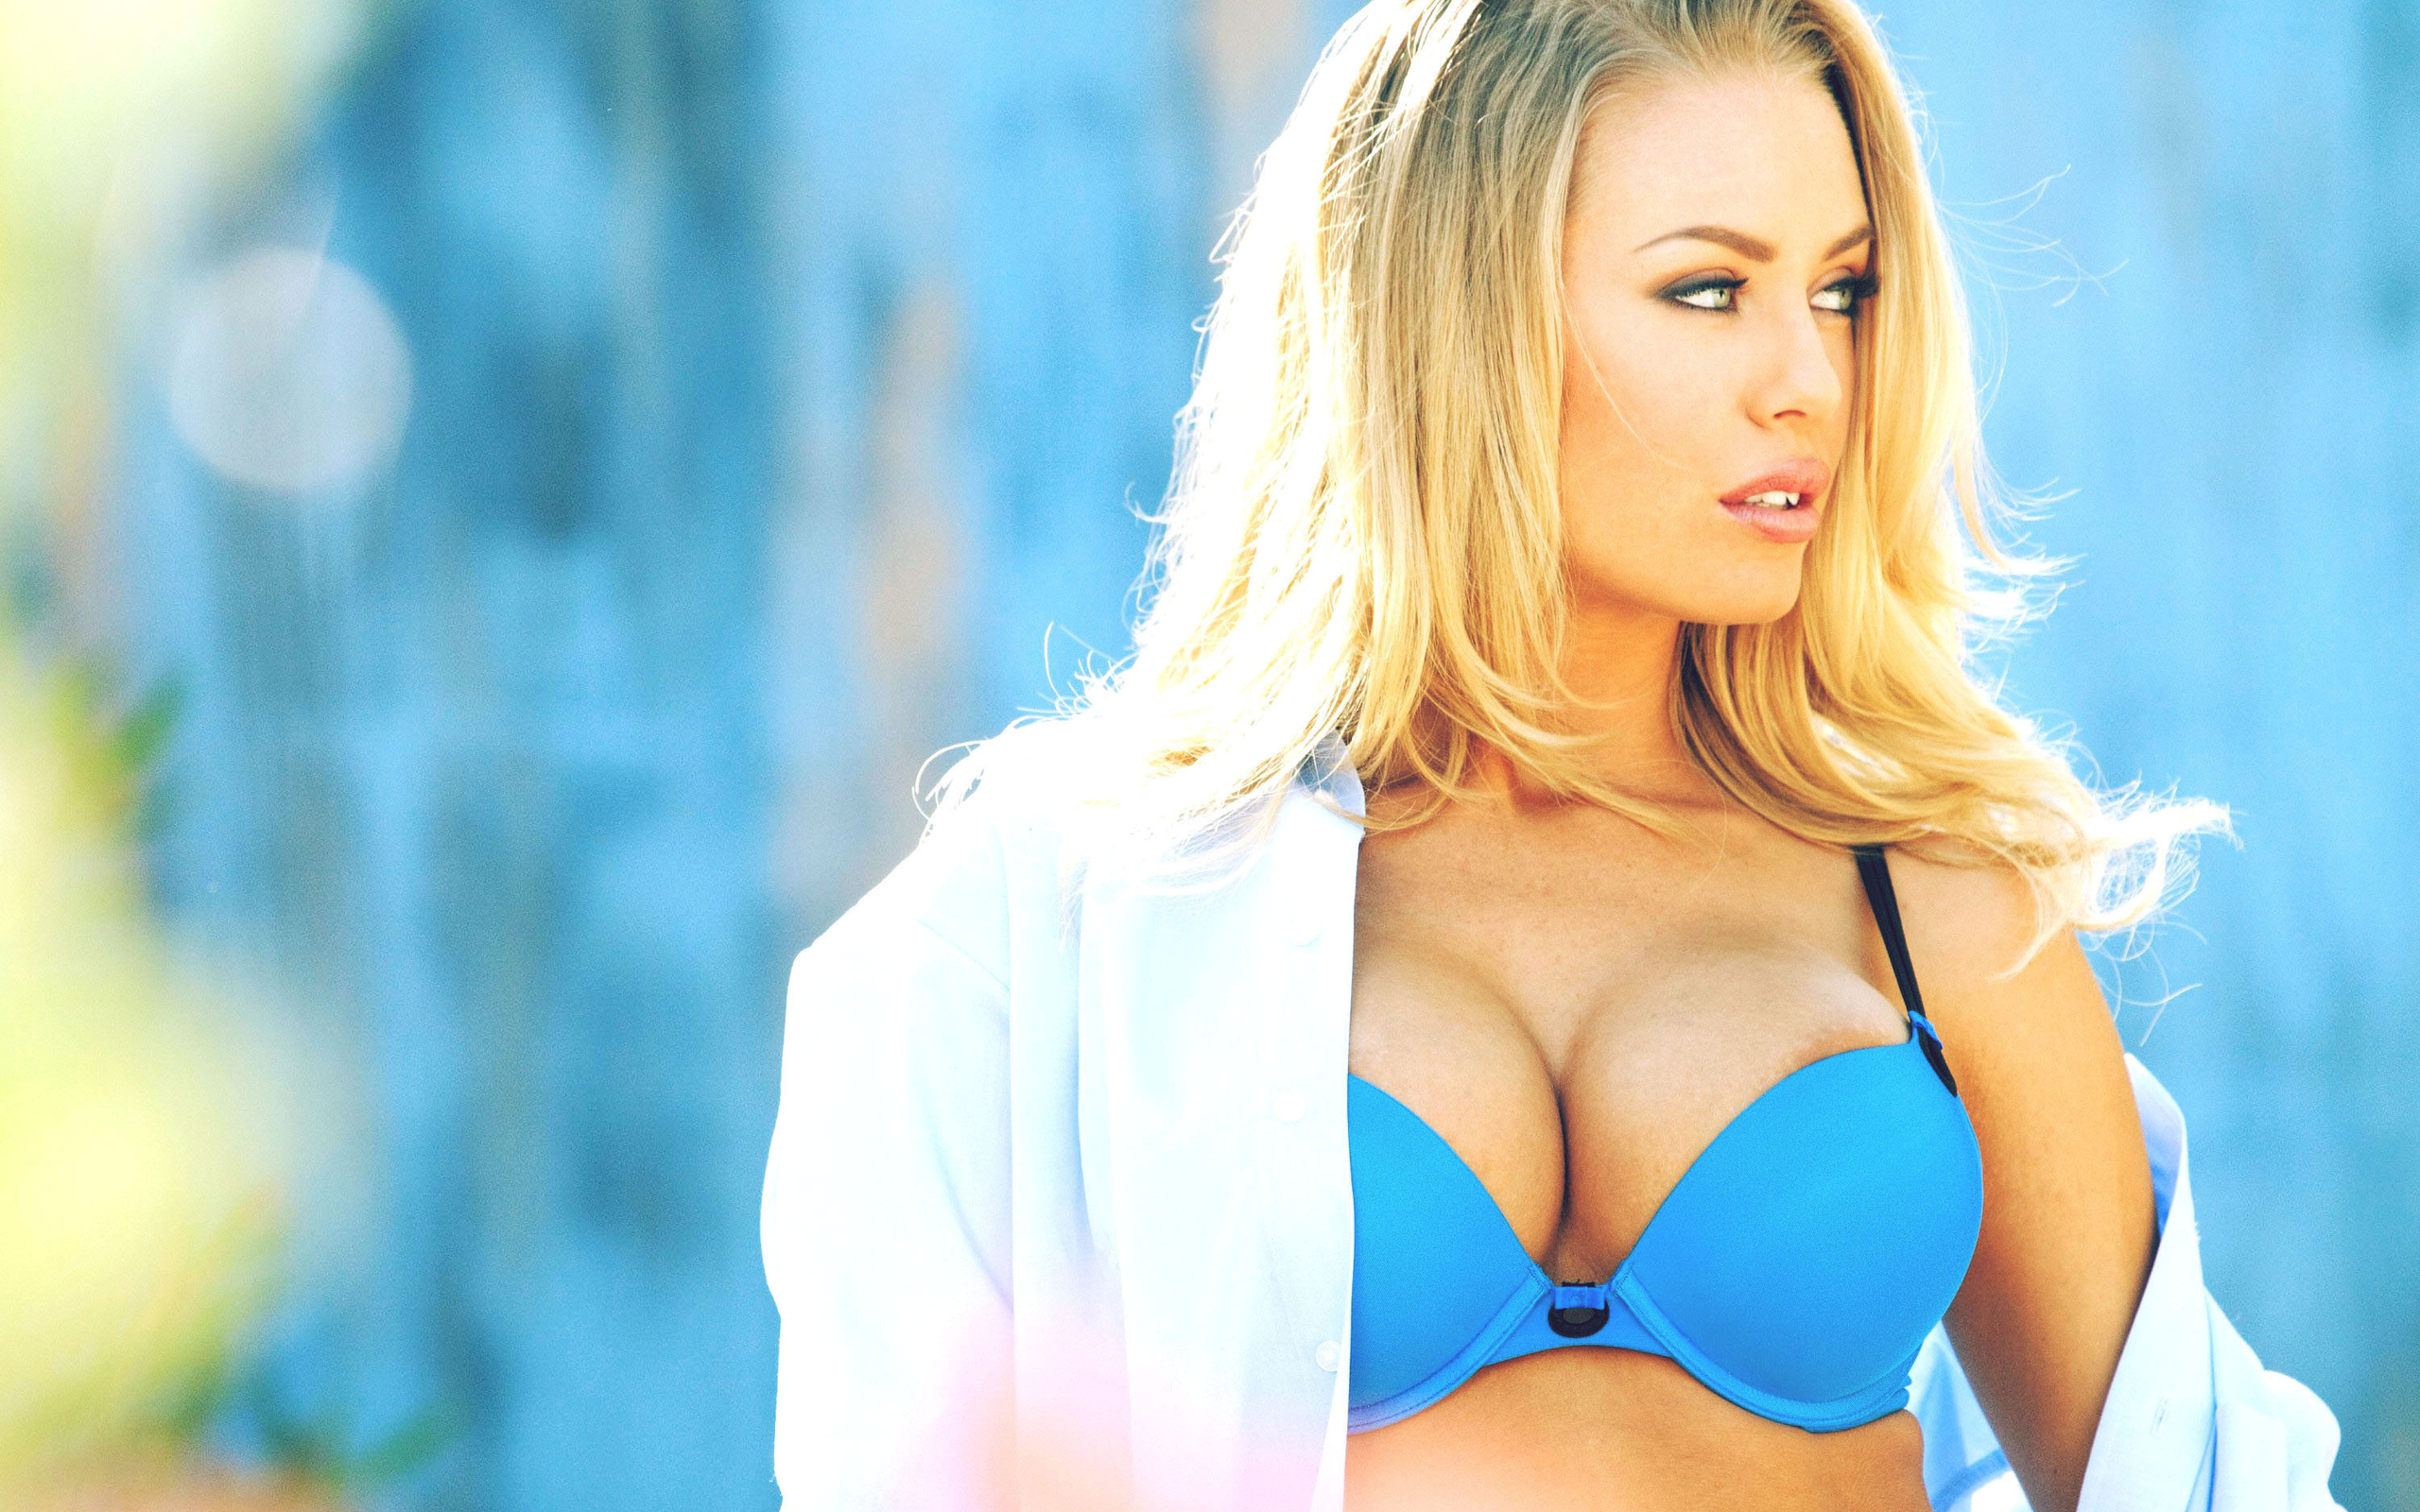 nicole aniston hd